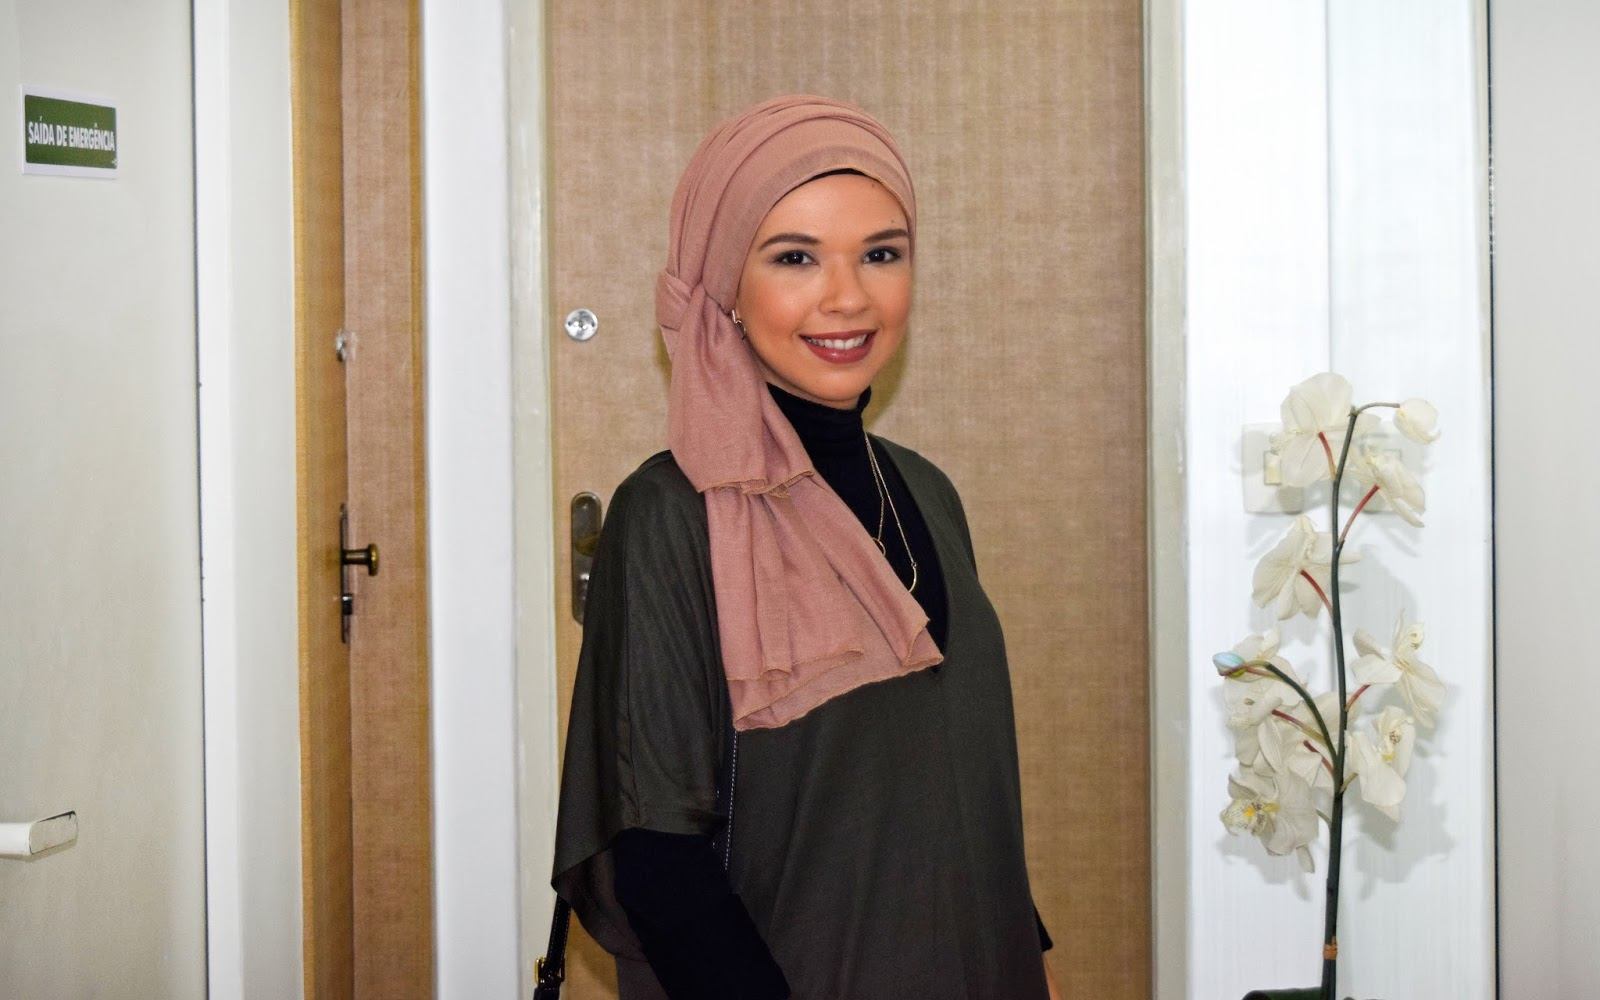 moda modesta, look do dia, muçulmana, hijab, turbante, moda